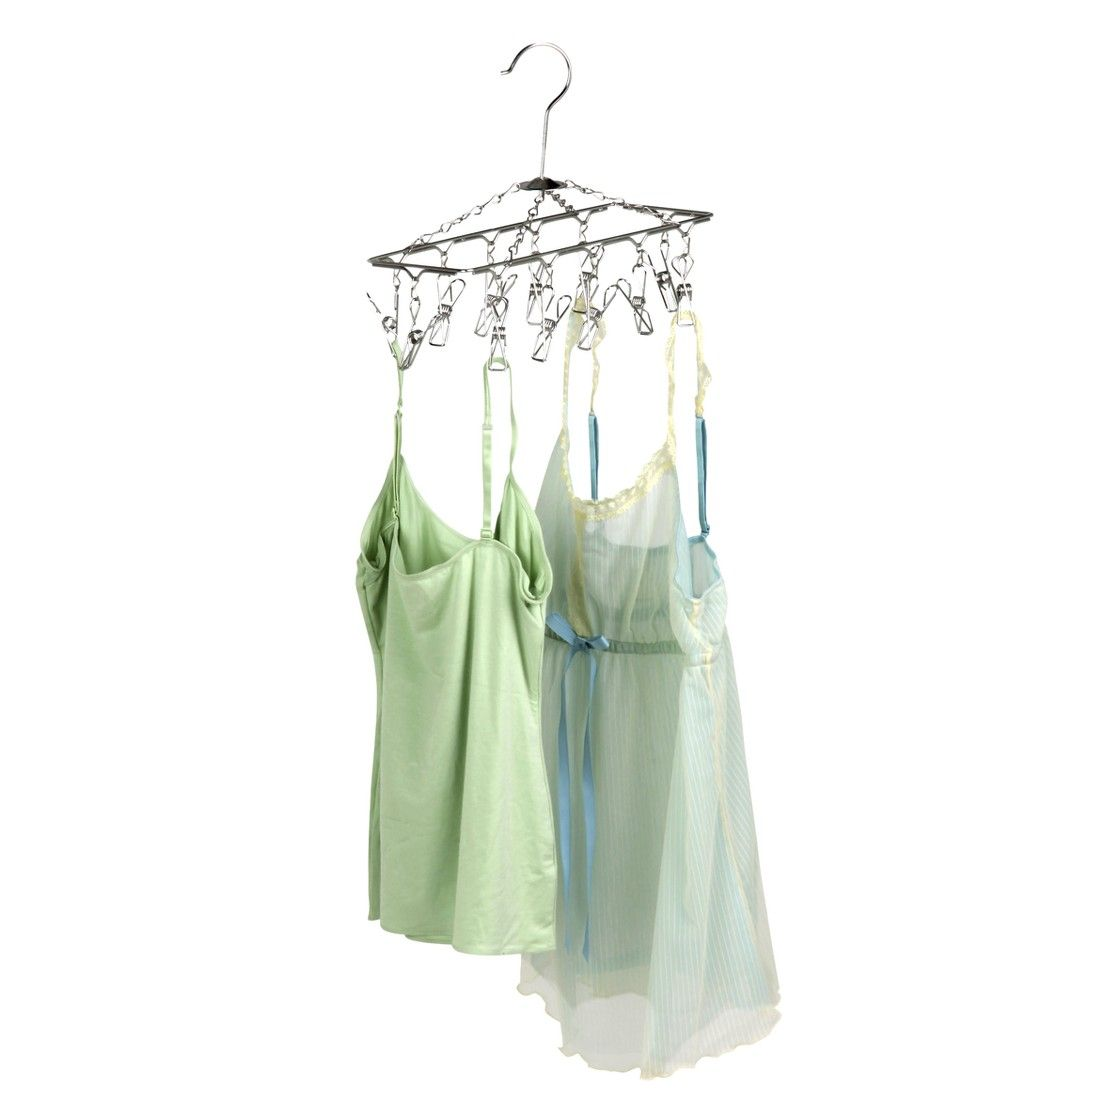 Honeycando hanging drying rack with clips could be used to